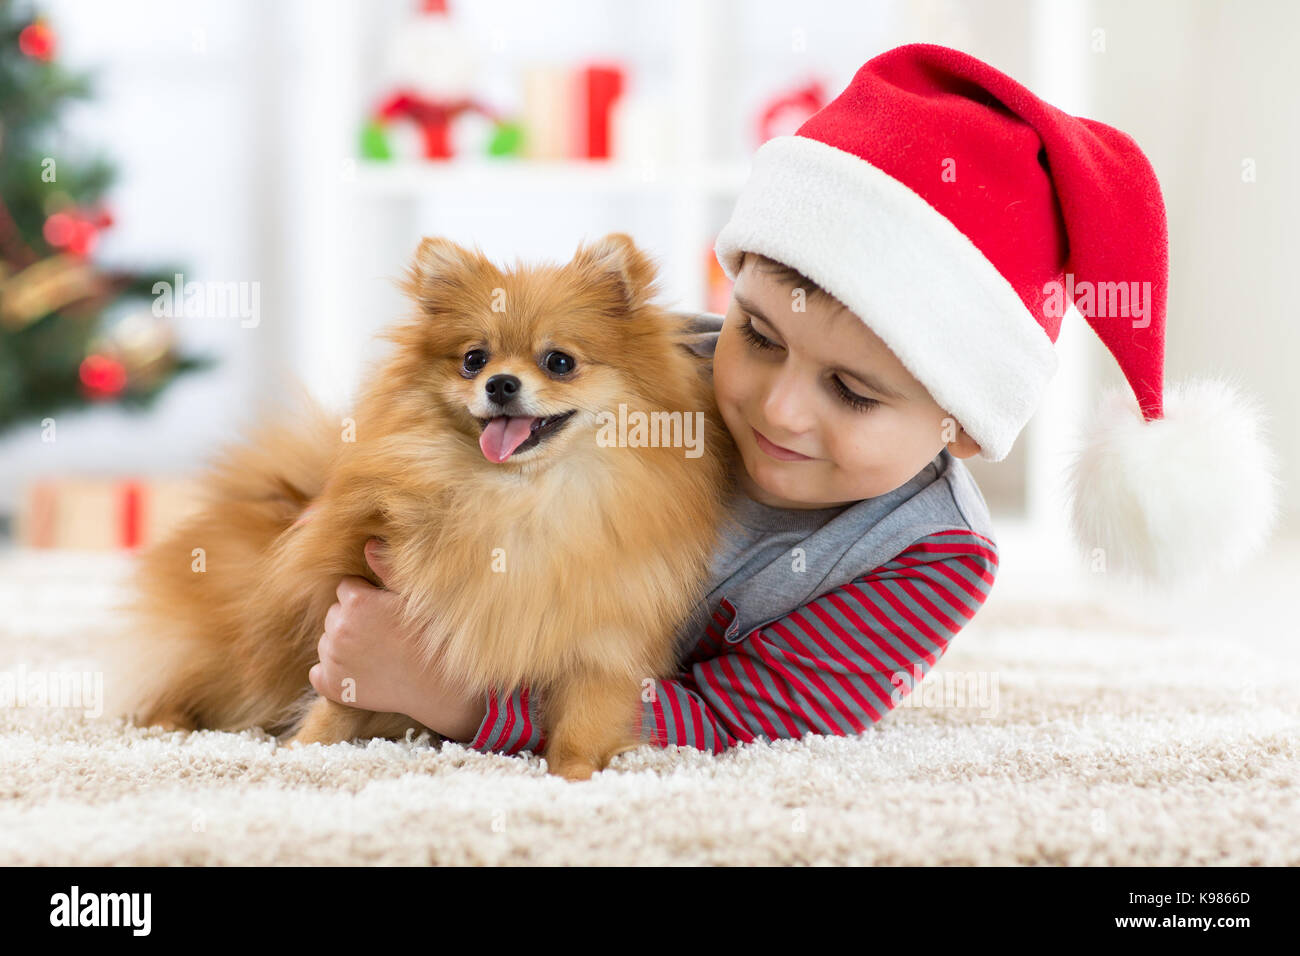 Little boy and dog at Christmas Stock Photo